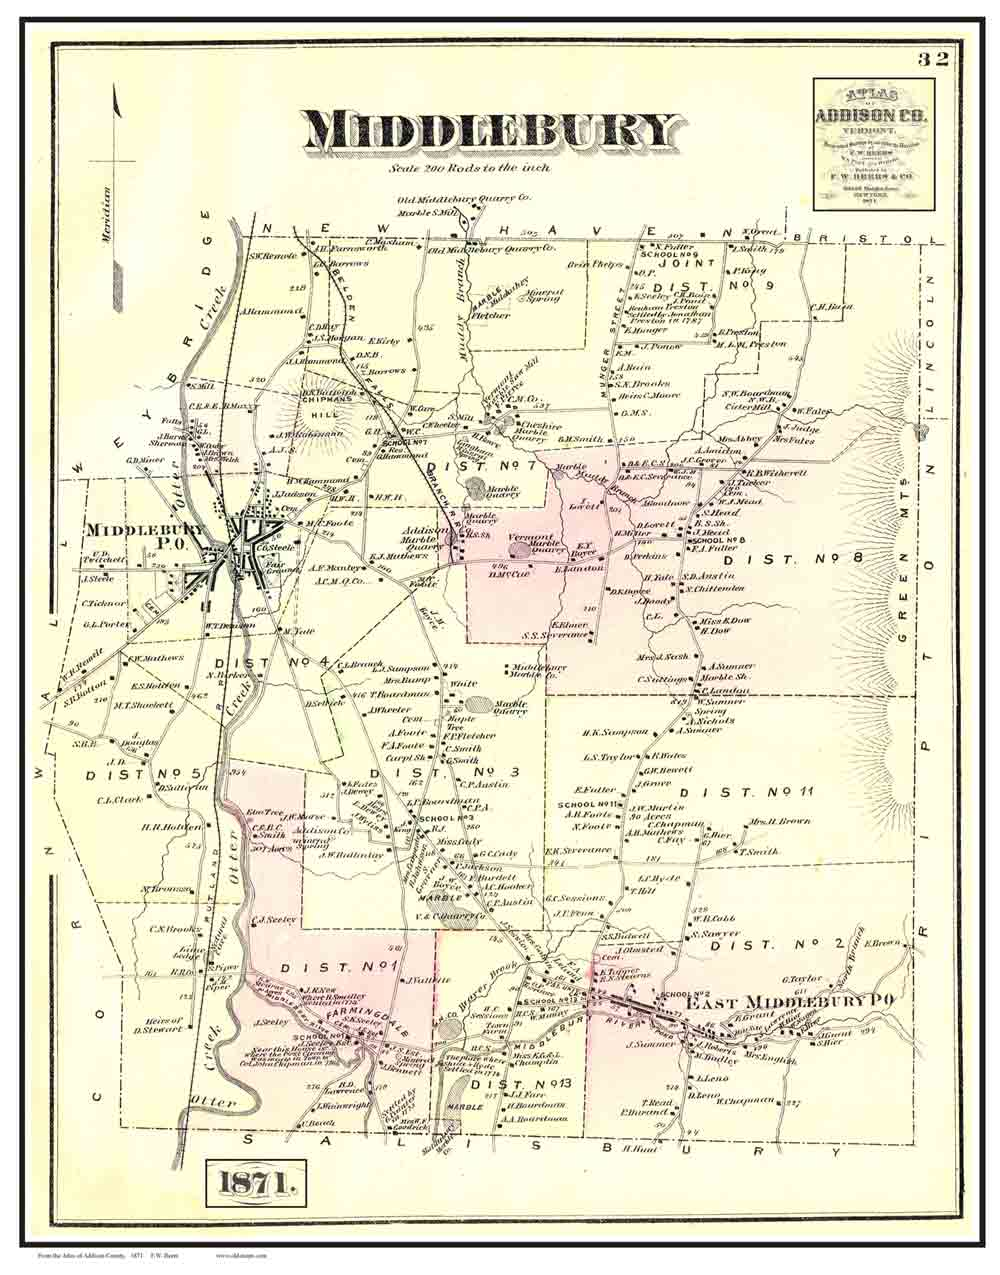 1871 Beers Atlas Poster Map - Middlebury VT - Color Reprints